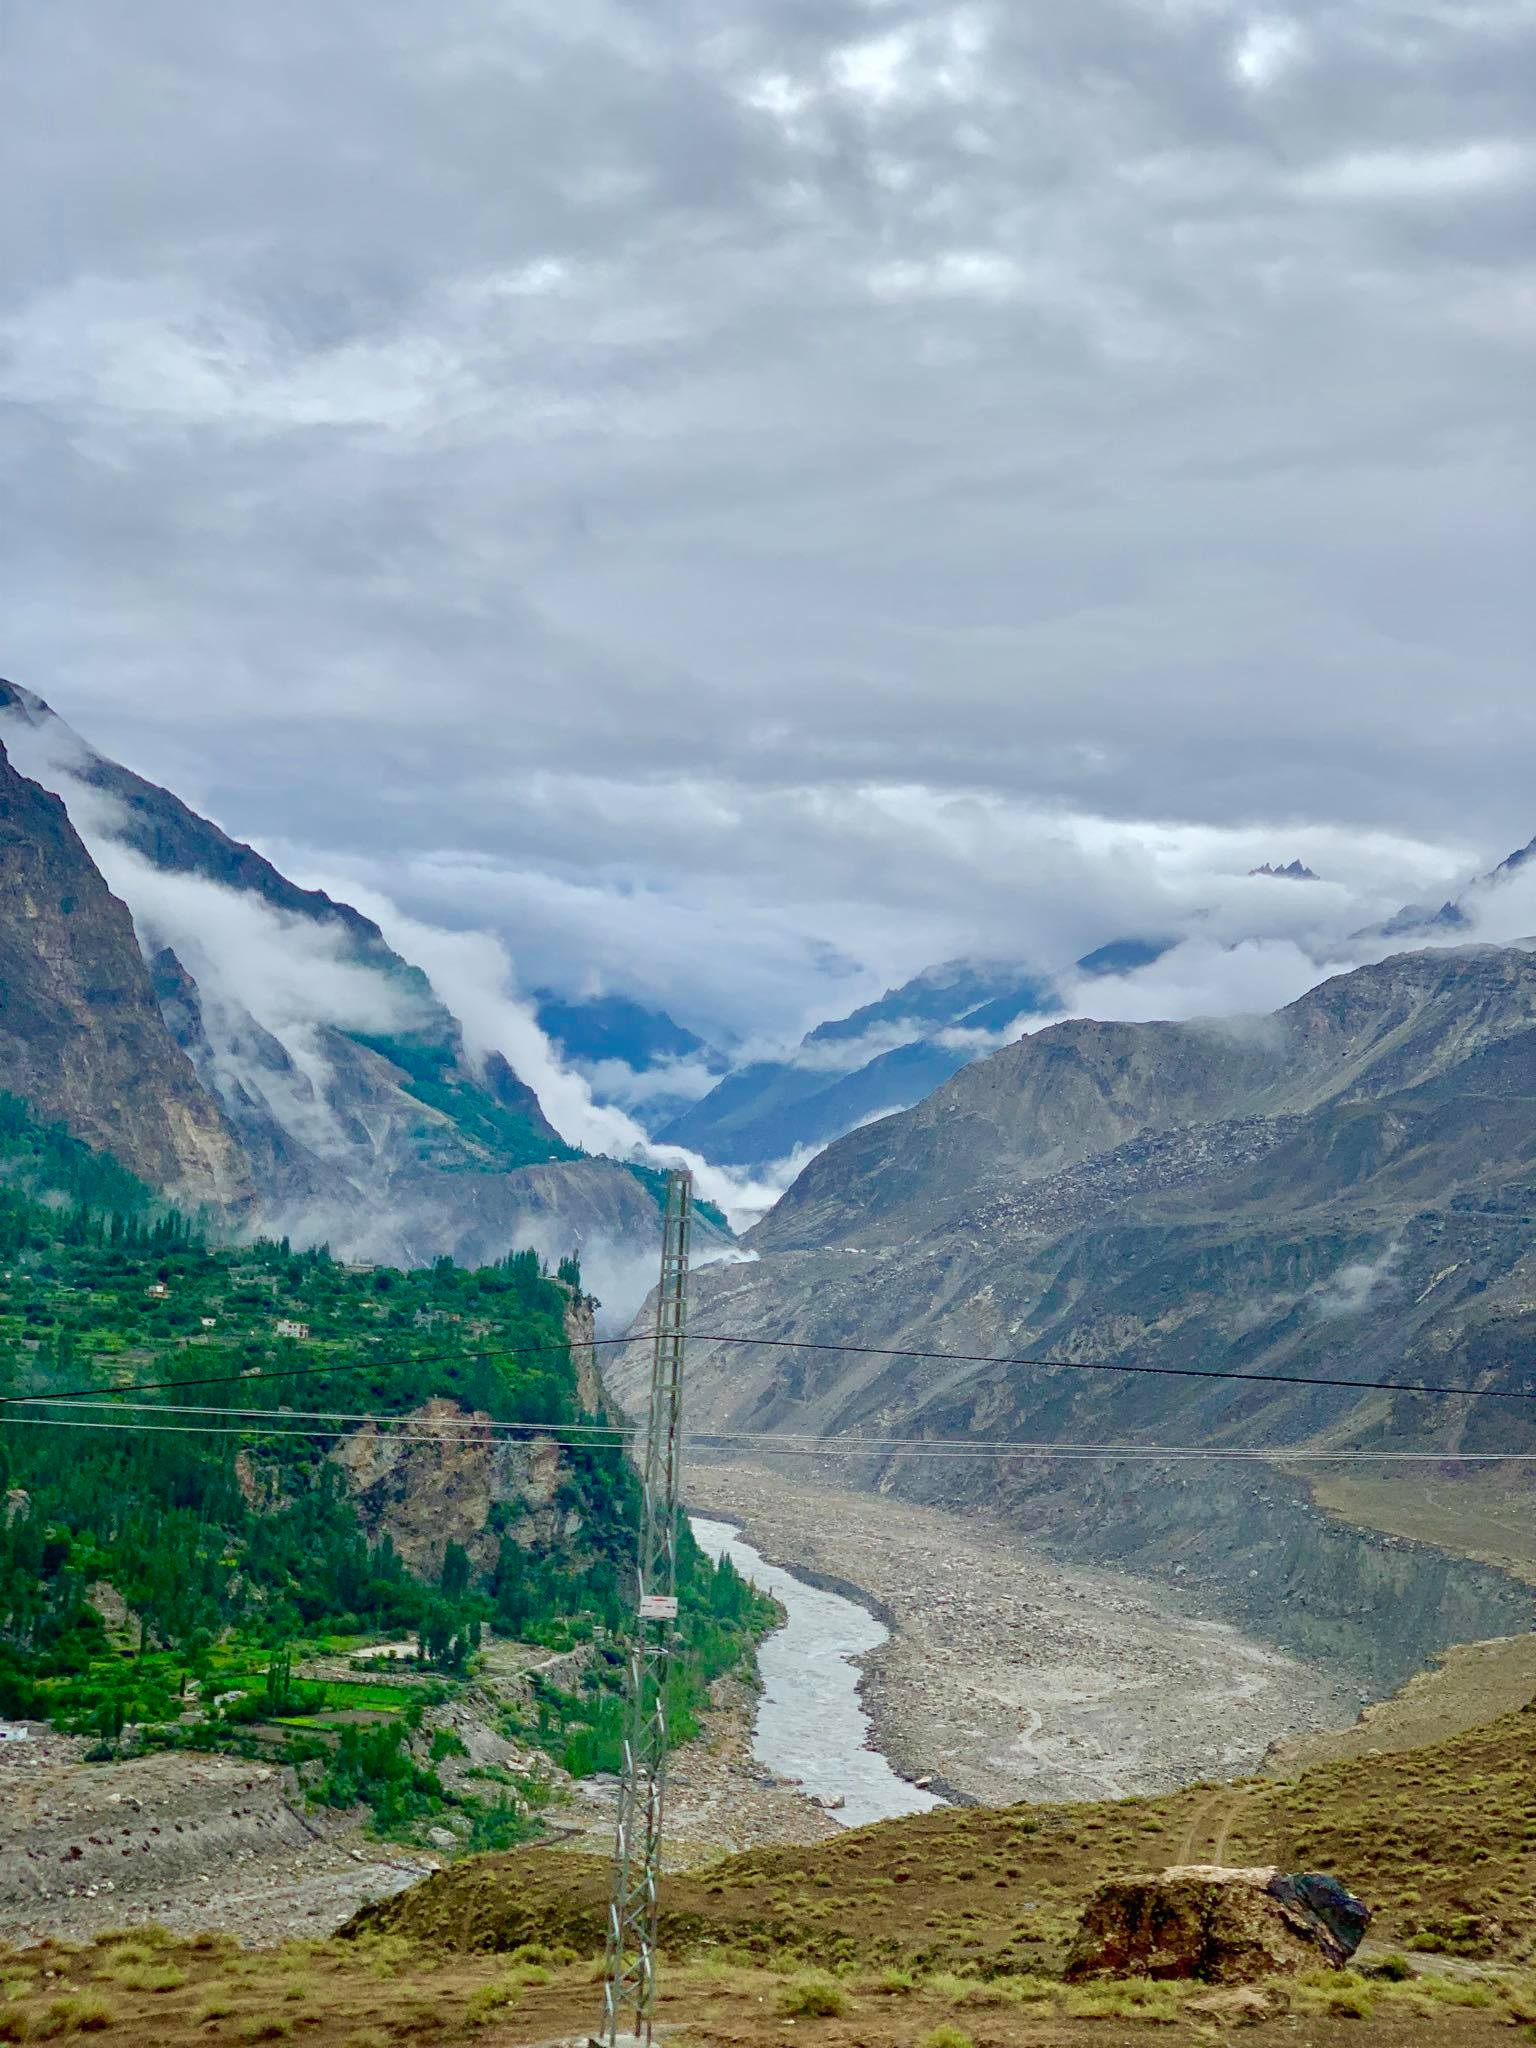 Kach Solo Travels in 2019 Driving in North Hunza Valley to Khunjerab Pass10.jpg